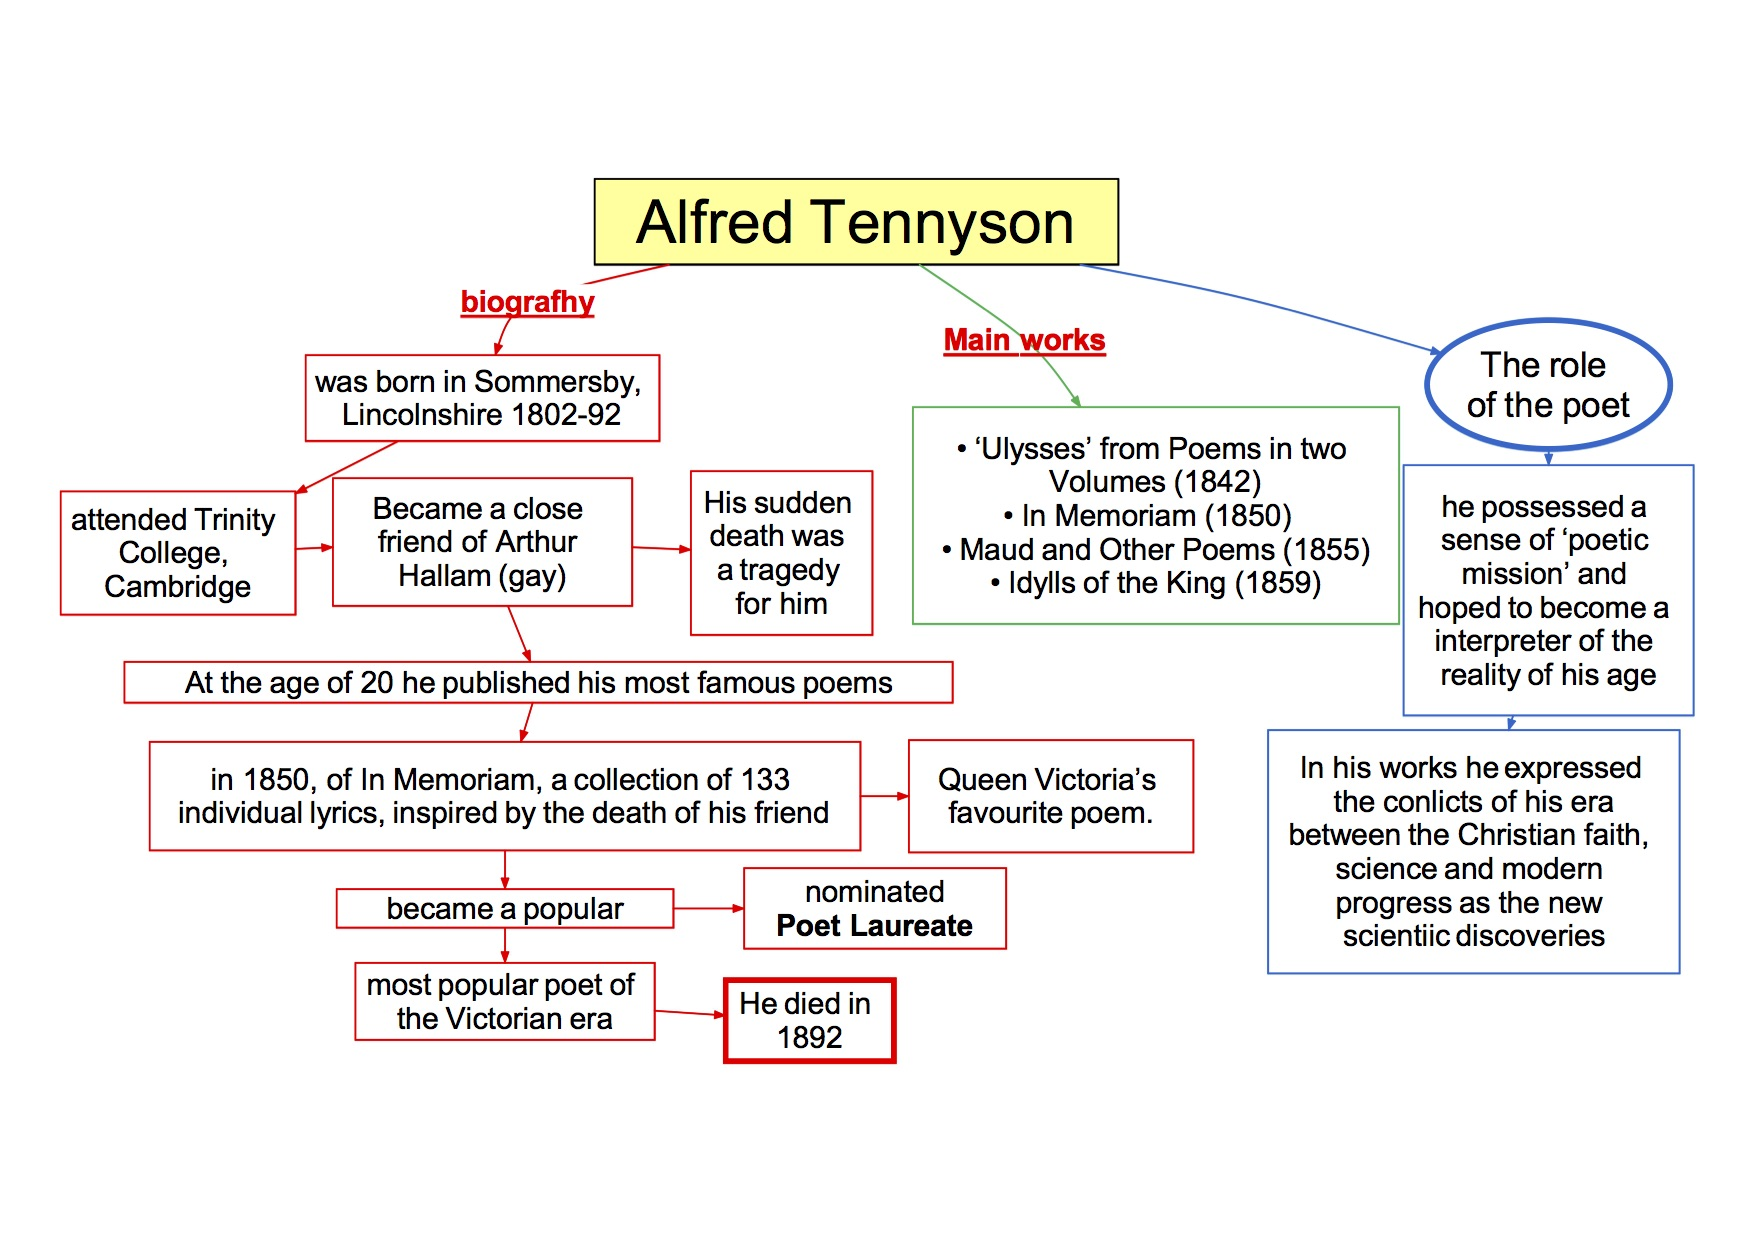 mappa concettuale visual map Inglese Alfred Tennyson biography - main works